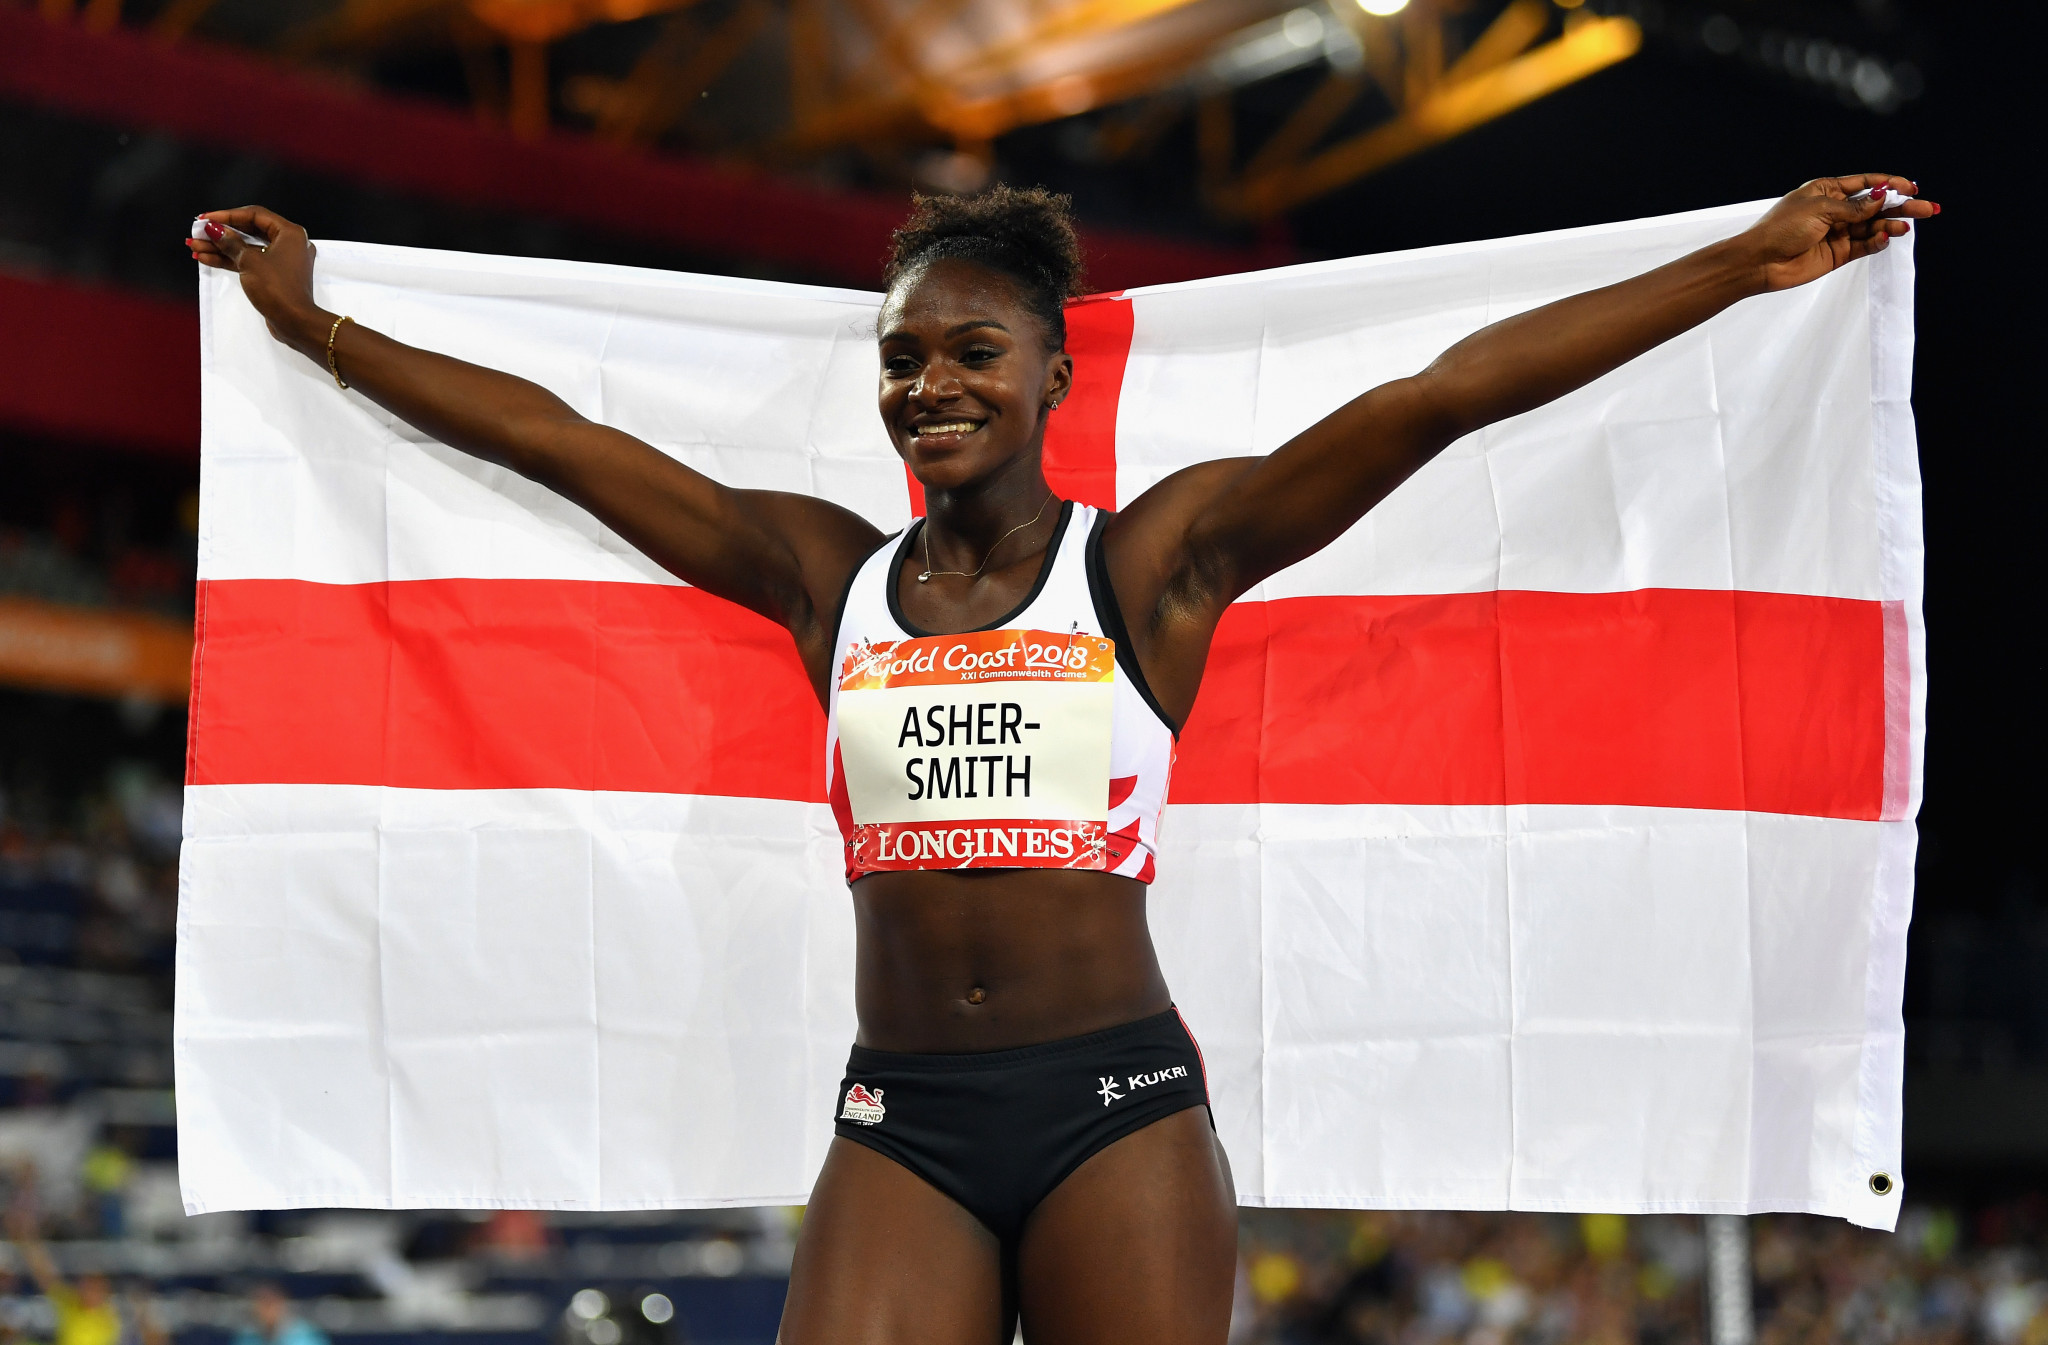 Birmingham 2022 will hope its newly-published schedule will attract stars like England's Dina Asher-Smith, despite multiple events in the summer ©Getty Images